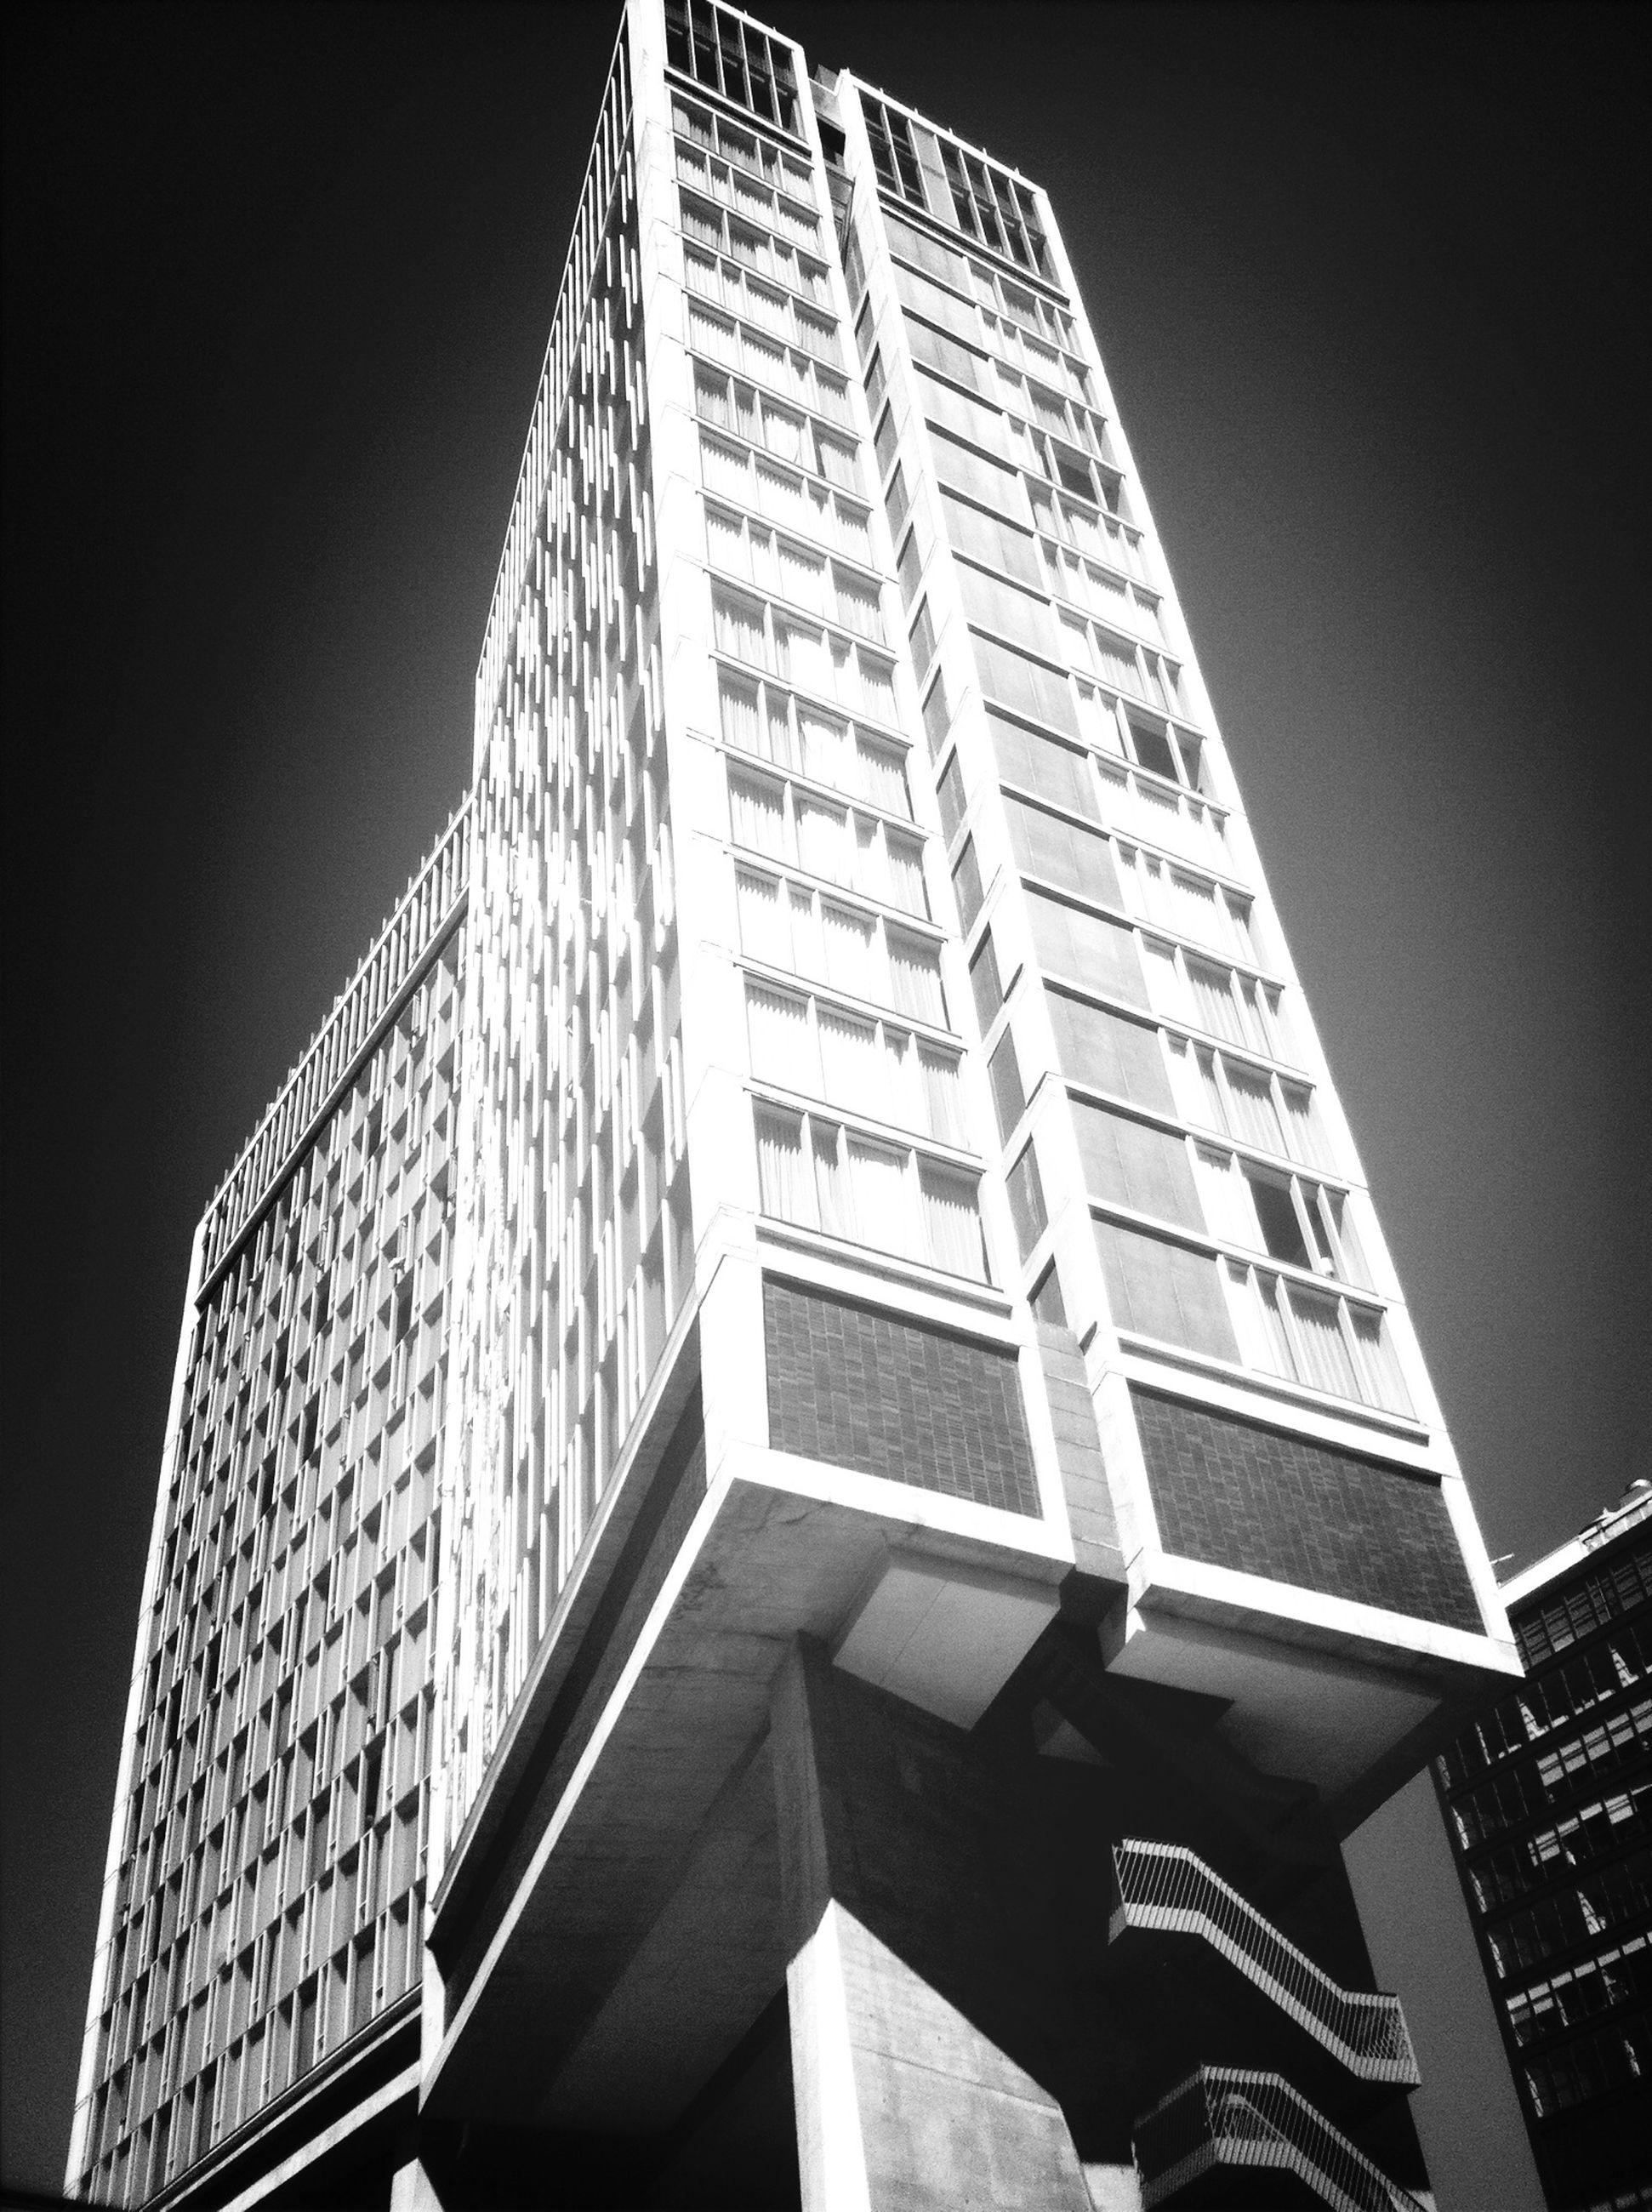 architecture, building exterior, built structure, low angle view, skyscraper, modern, city, tall - high, office building, tower, building, sky, tall, clear sky, outdoors, no people, day, window, city life